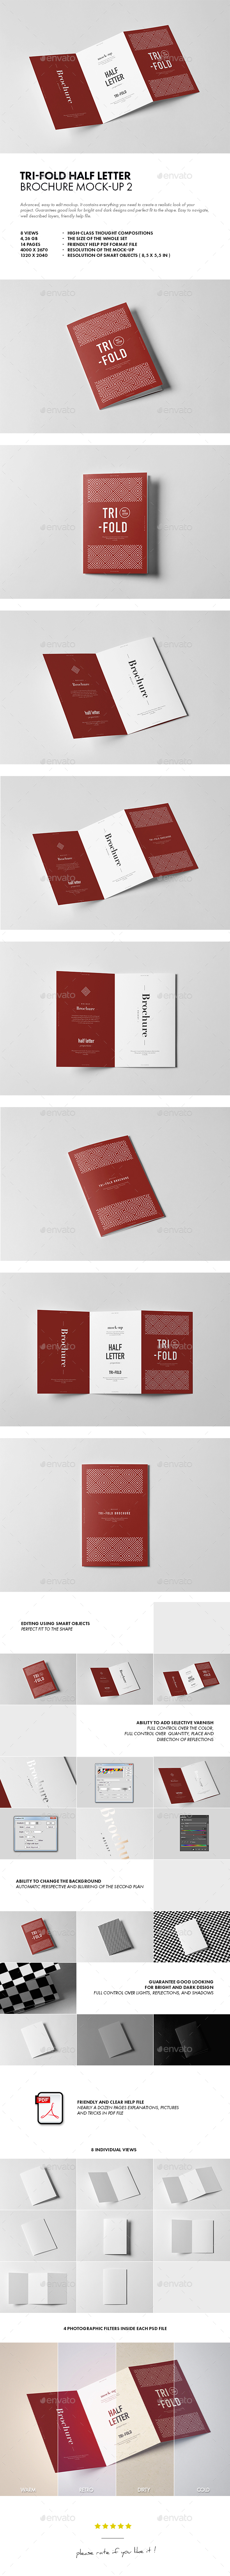 TriFold Half Letter Brochure MockUp  By Yogurt  Graphicriver